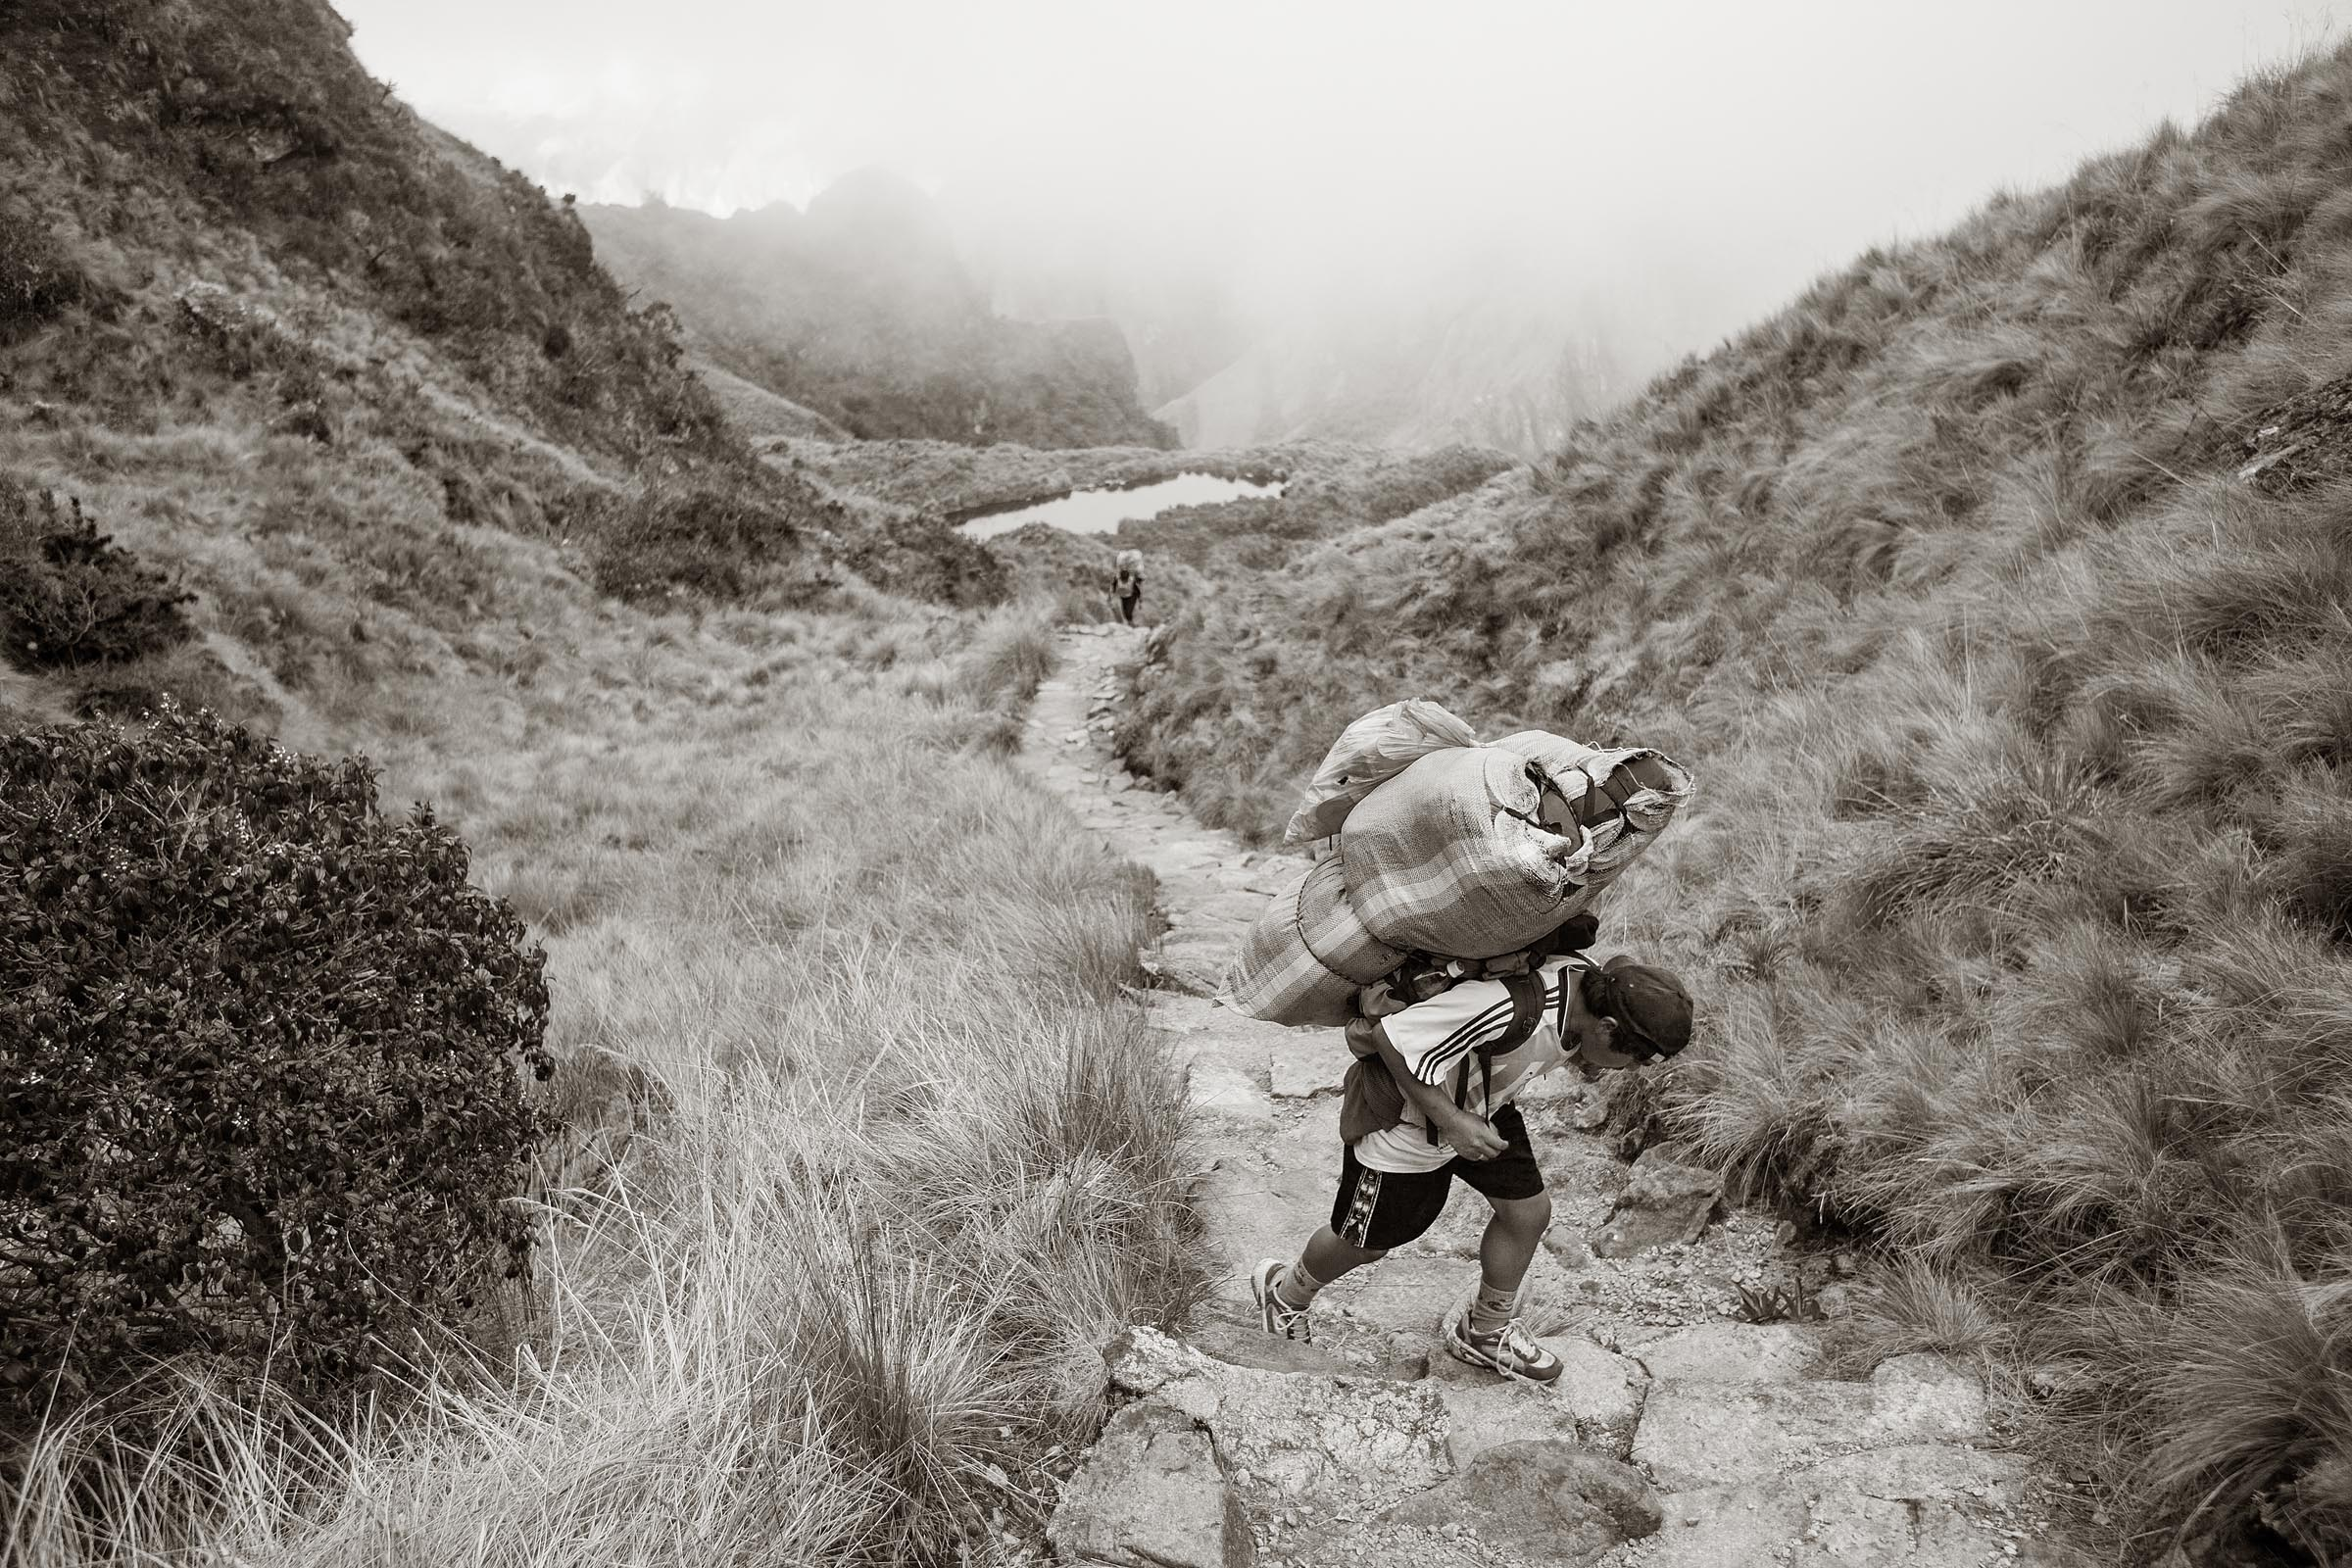 A porter approaches the Runkuracay Pass along the Inca Trail. The pass is the second highest point along the trail with an altitude of 3950 meters above sea level. Carrying heavy loads teams of porters haul everything their clients will need to make the trek to Machu Picchu.